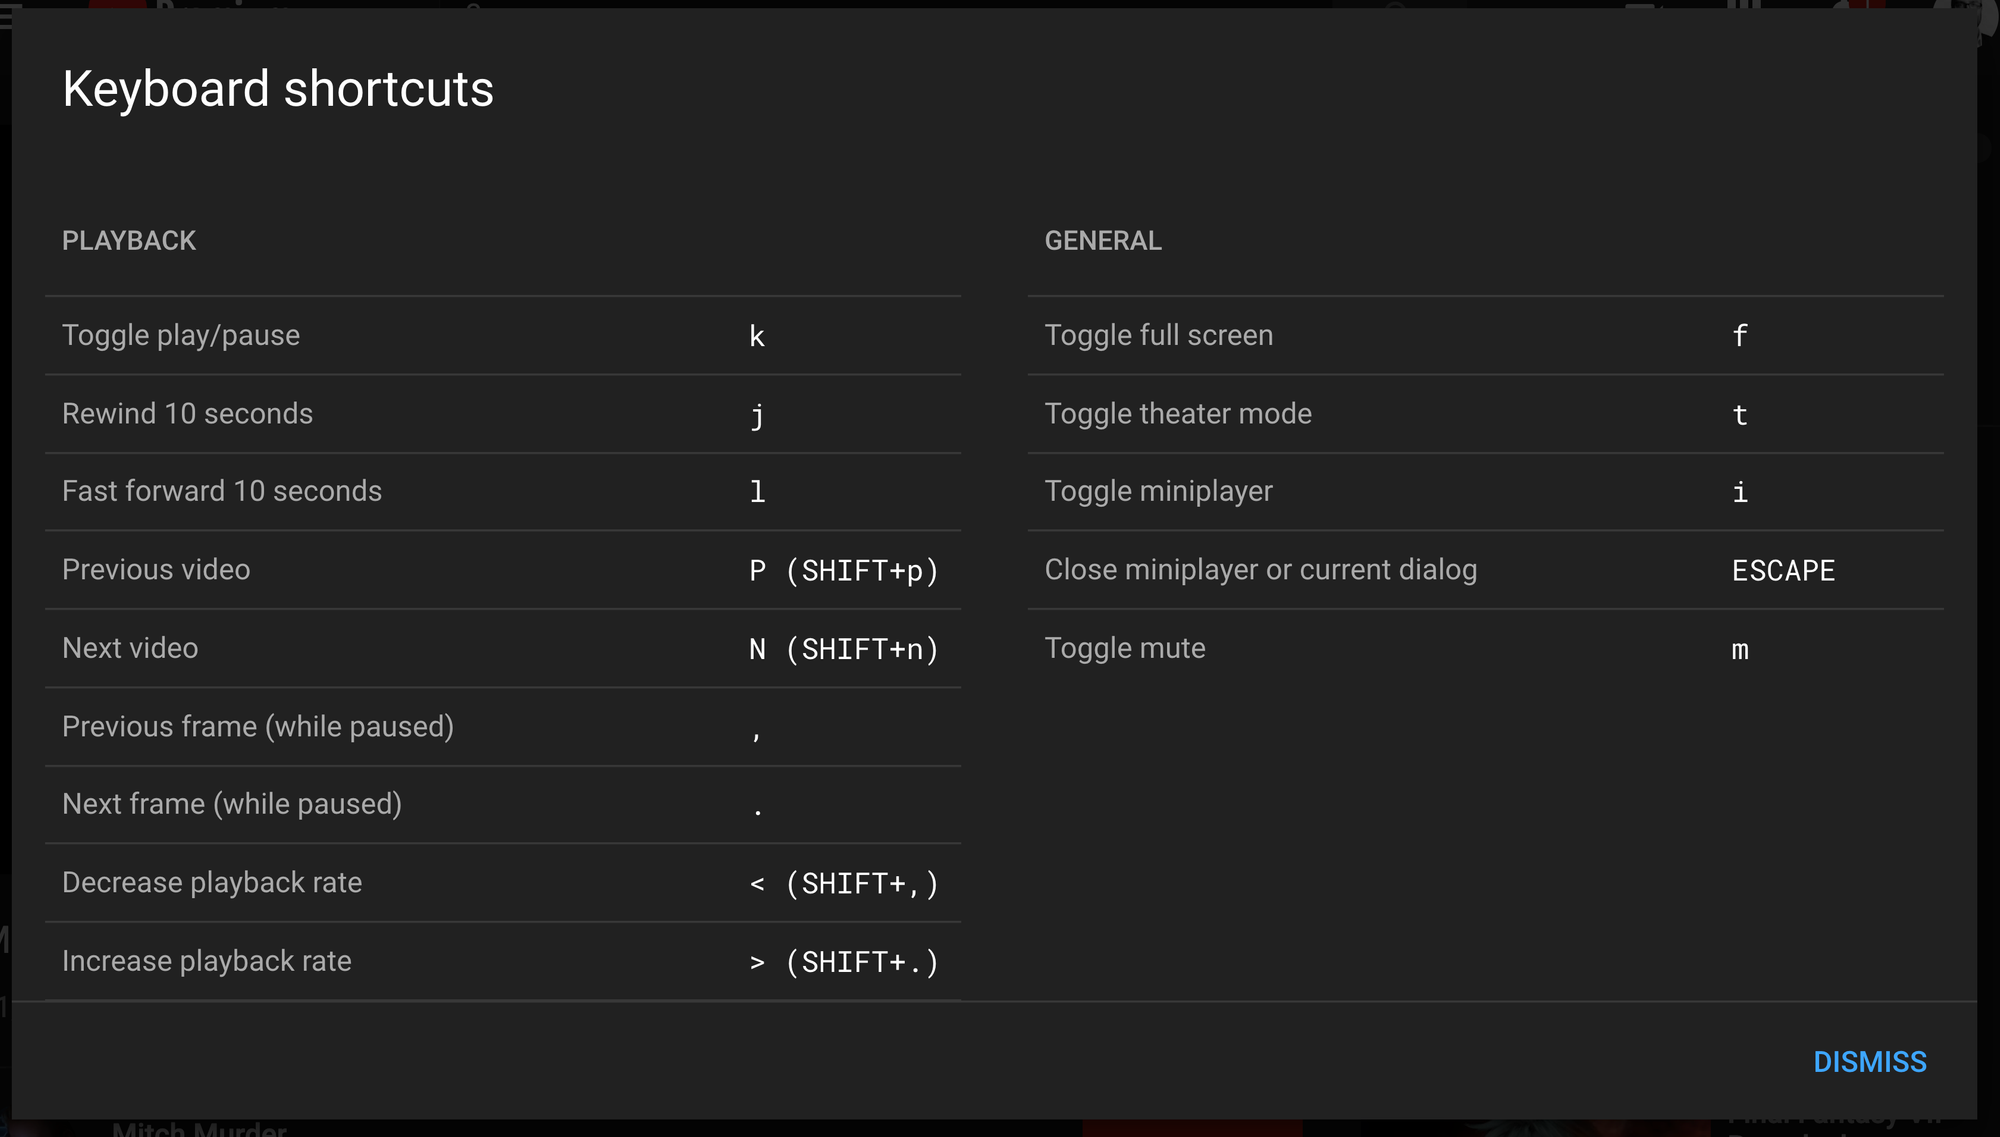 YouTube's official list of shortcuts. (You can pop this up at any time by pressing shift+/)